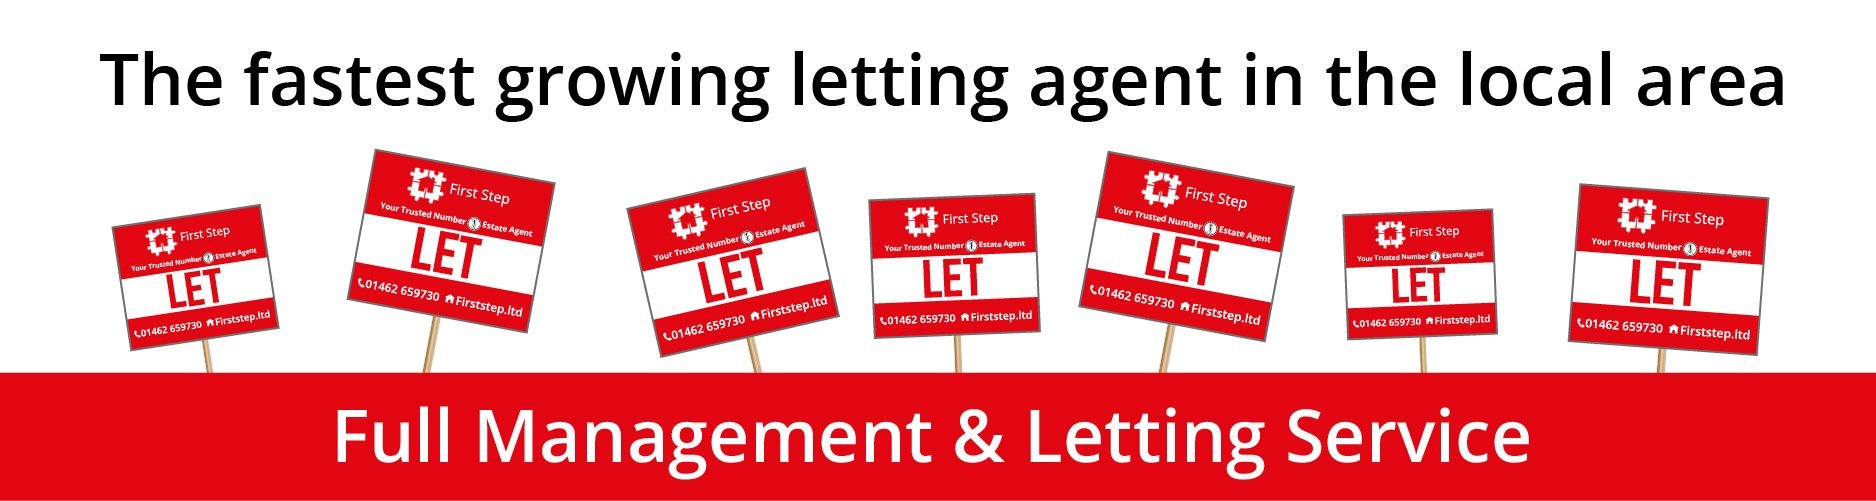 the fastest growing letting agent in the local area